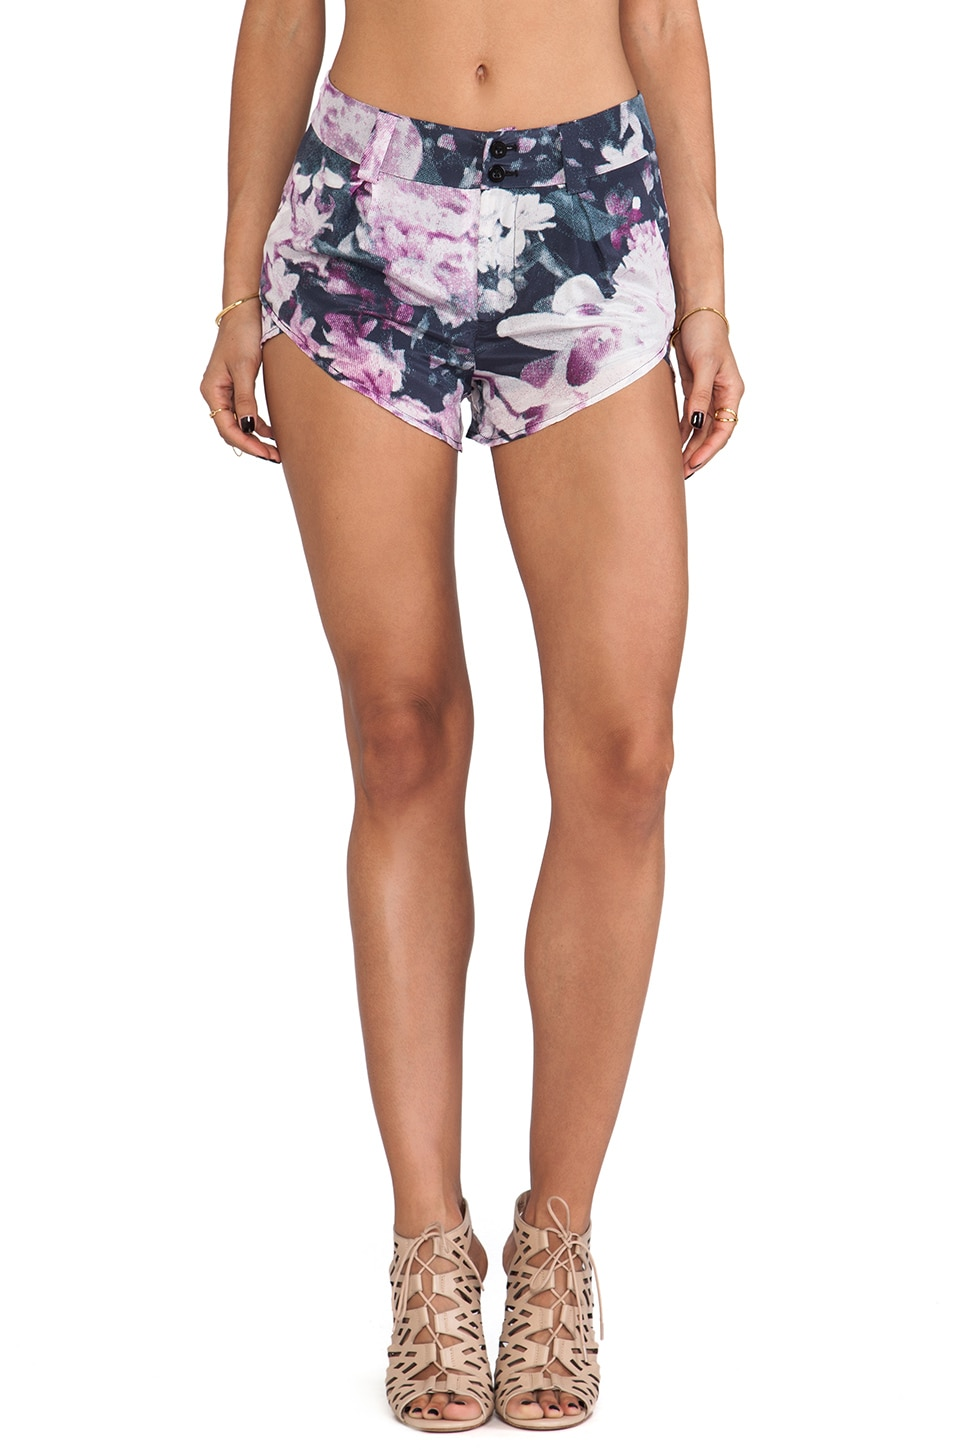 Talulah Wind Swirls Shorts in Black Jasmine Print